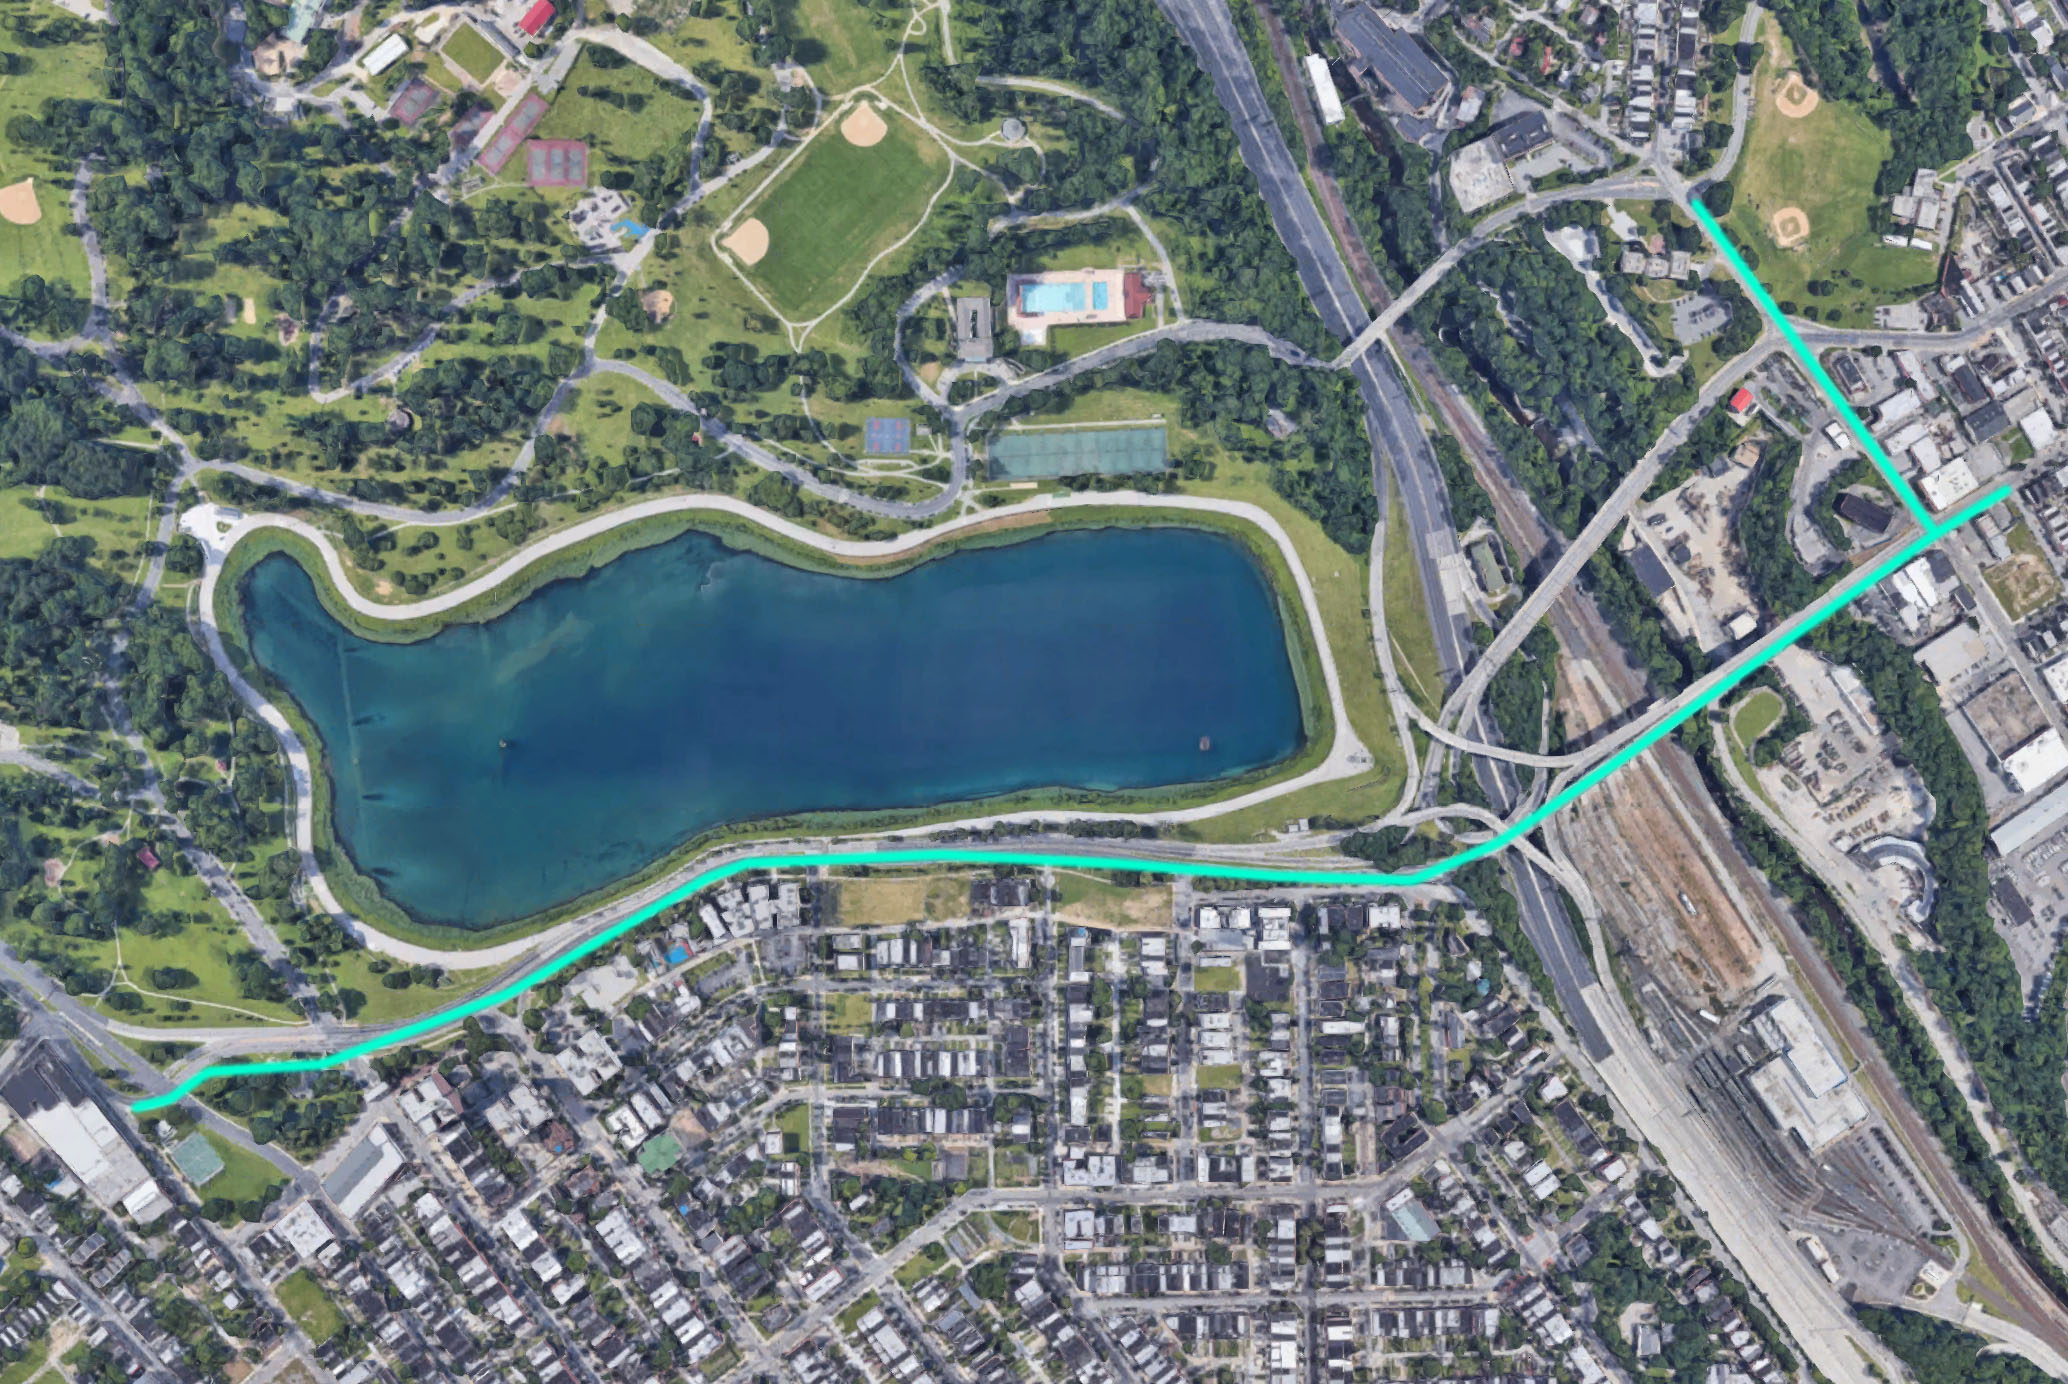 The proposed barrier-protected bike and pedestrian path route is outlined in teal above.